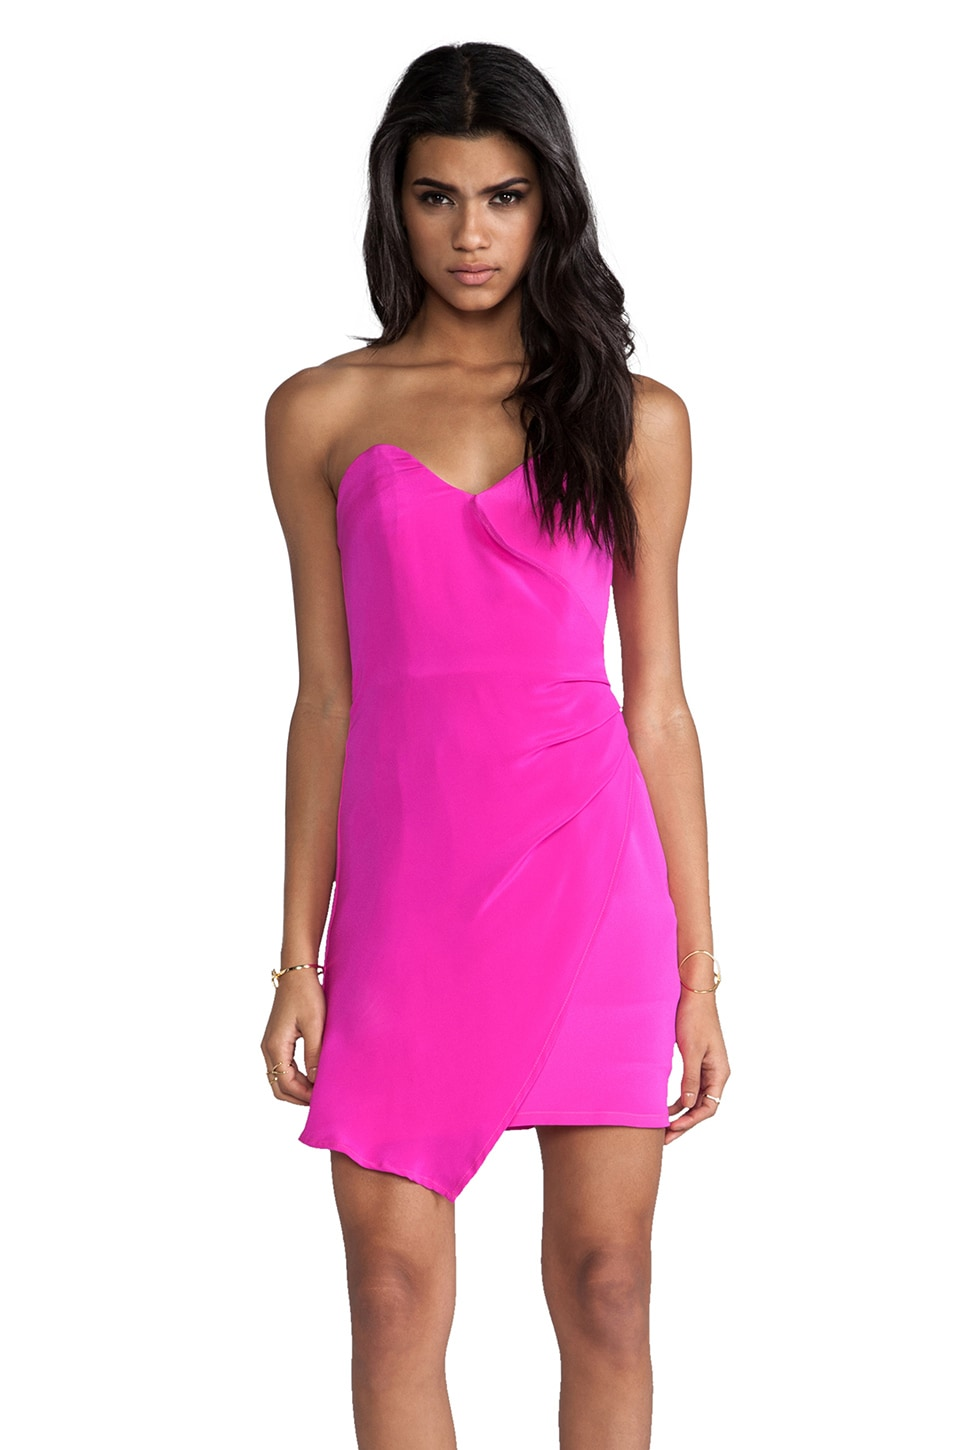 Naven Designer Heartbreaker Dress in Pop Pink